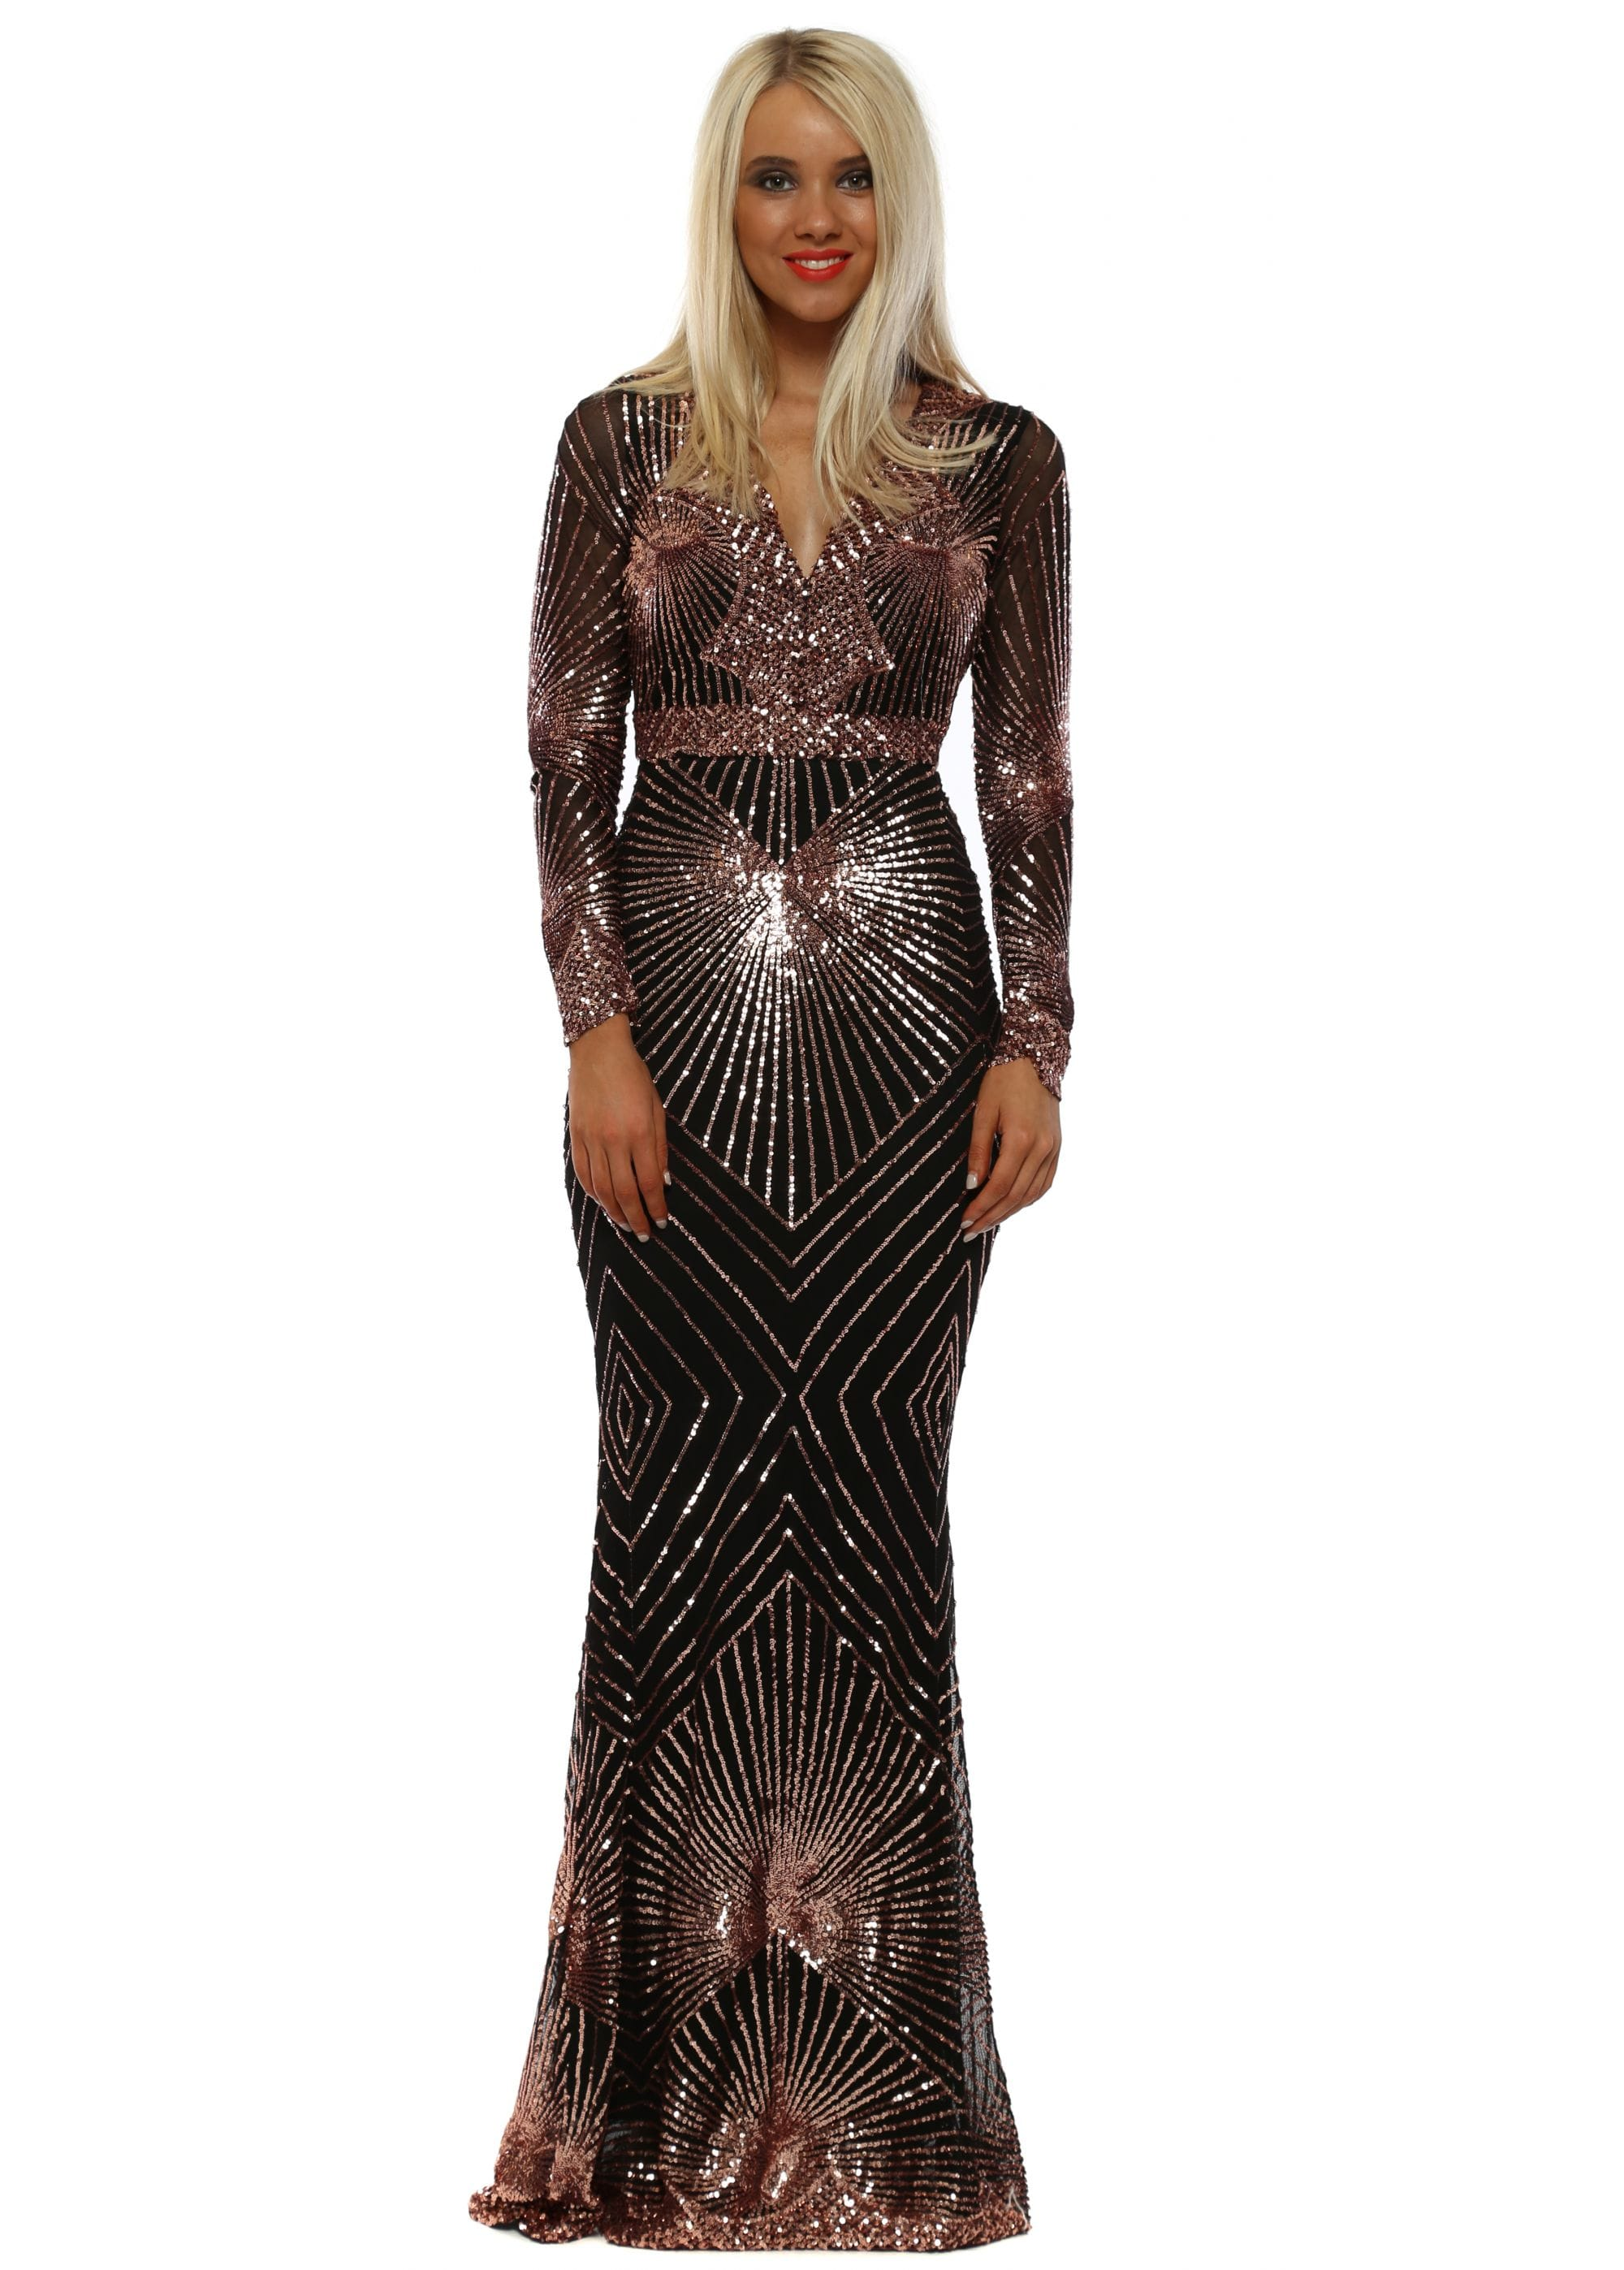 58738d33a3 Stephanie Pratt Starburst Rose Gold Sequin Maxi Dress